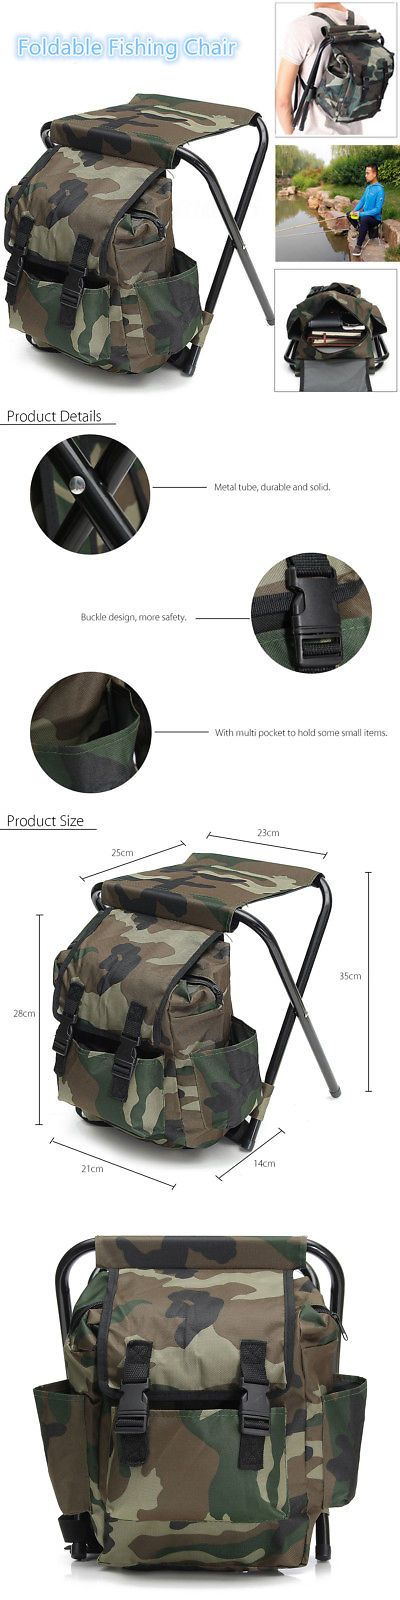 fishing chair rucksack koken barber model numbers chairs and seats 19985 2in1 hunting stool backpack fold seat bag camping